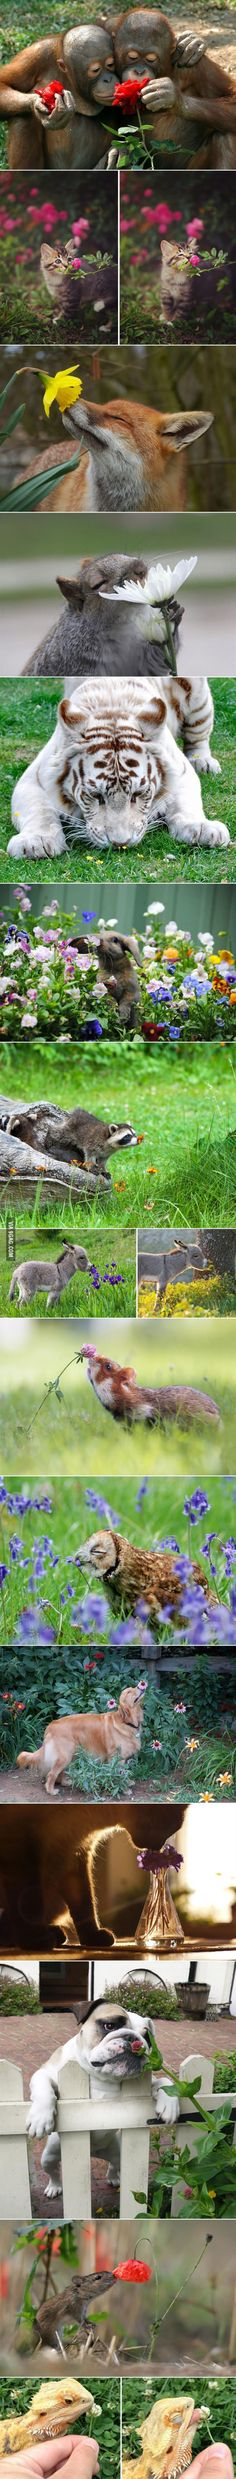 Animals smelling flowers